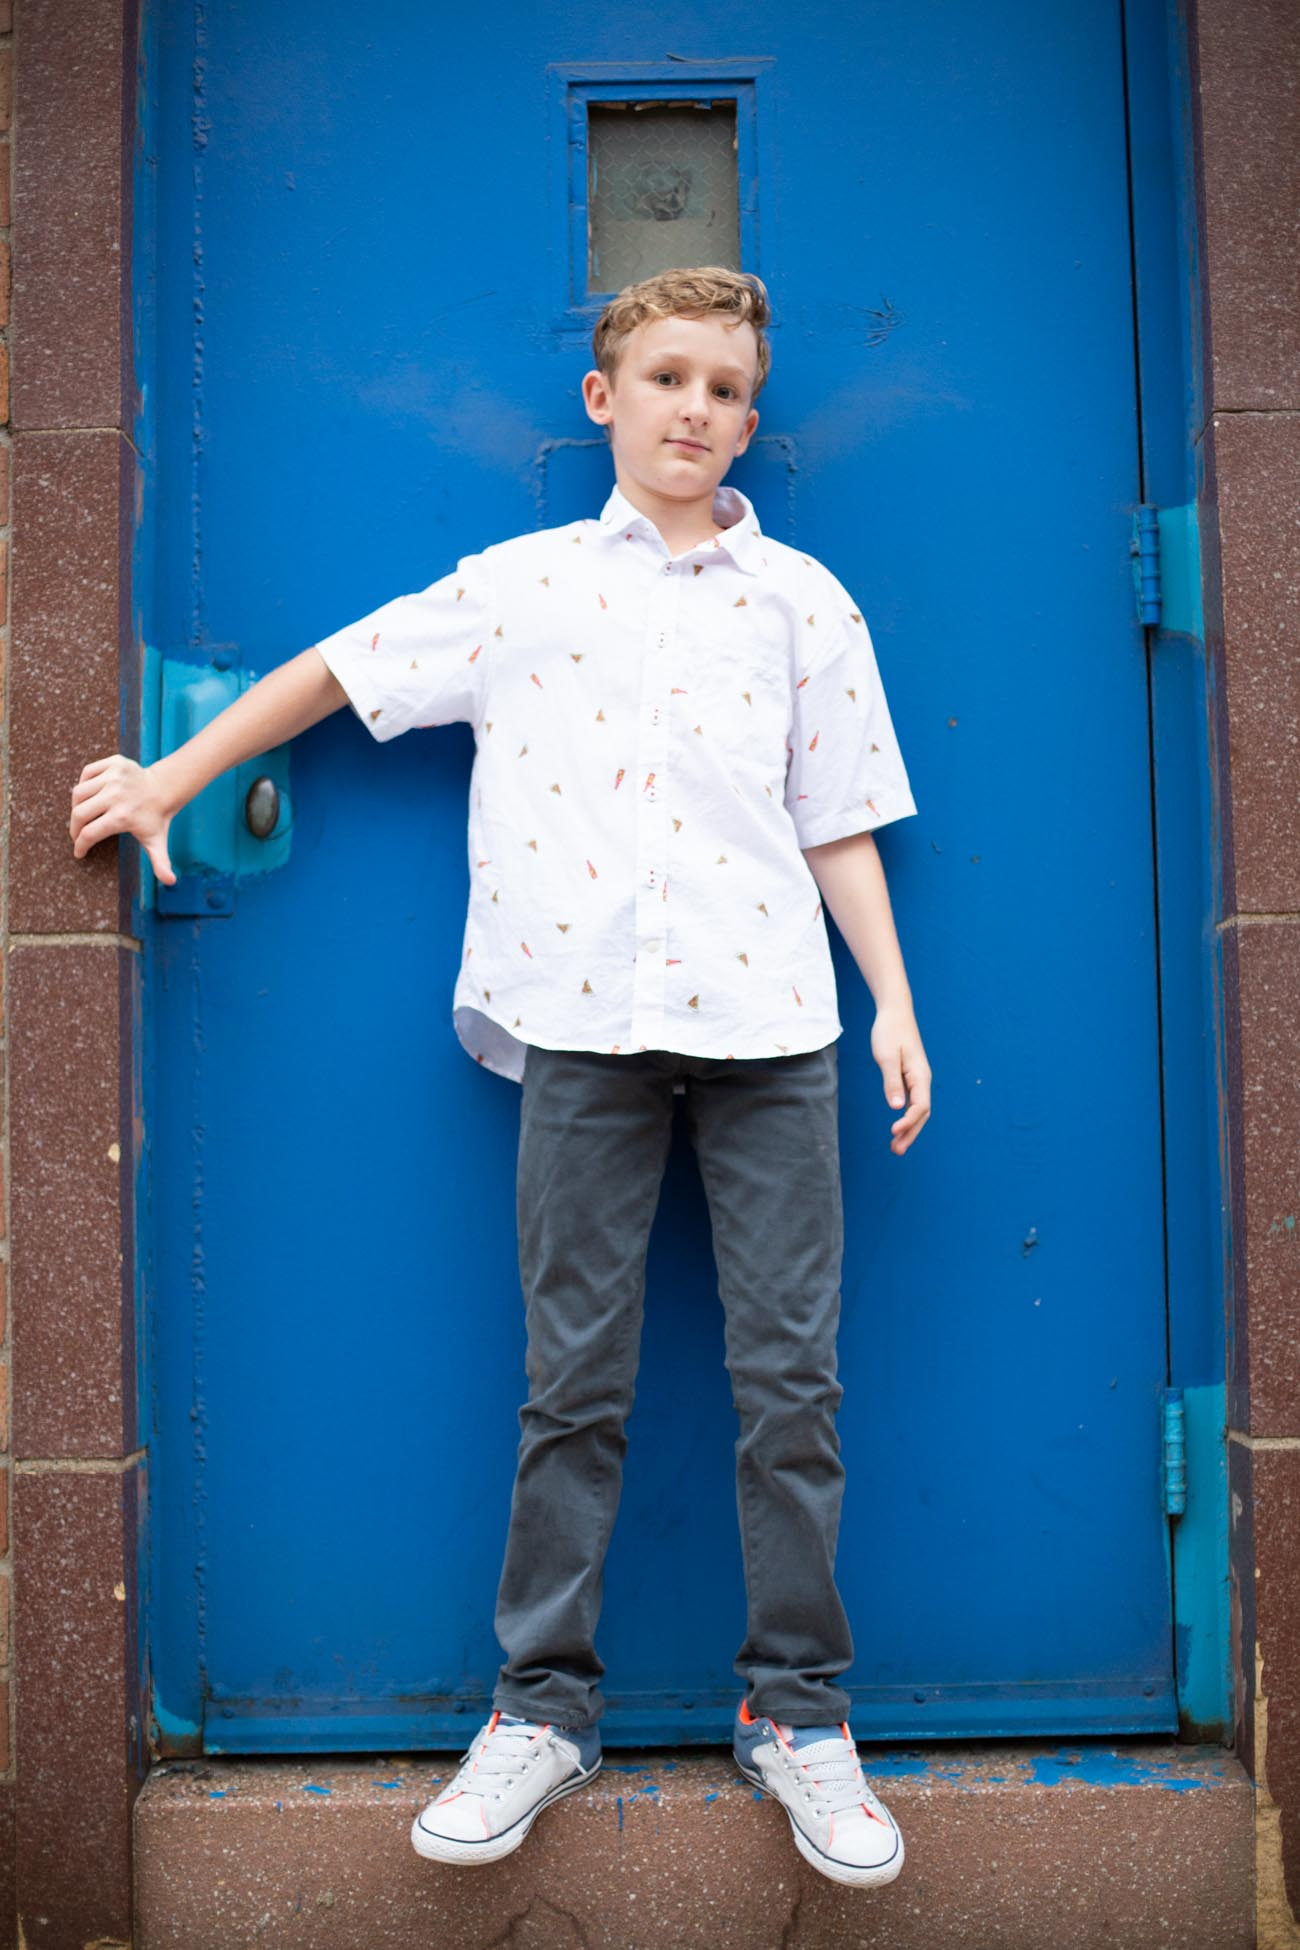 Davids Bar Mitzvah Preview-6.jpg